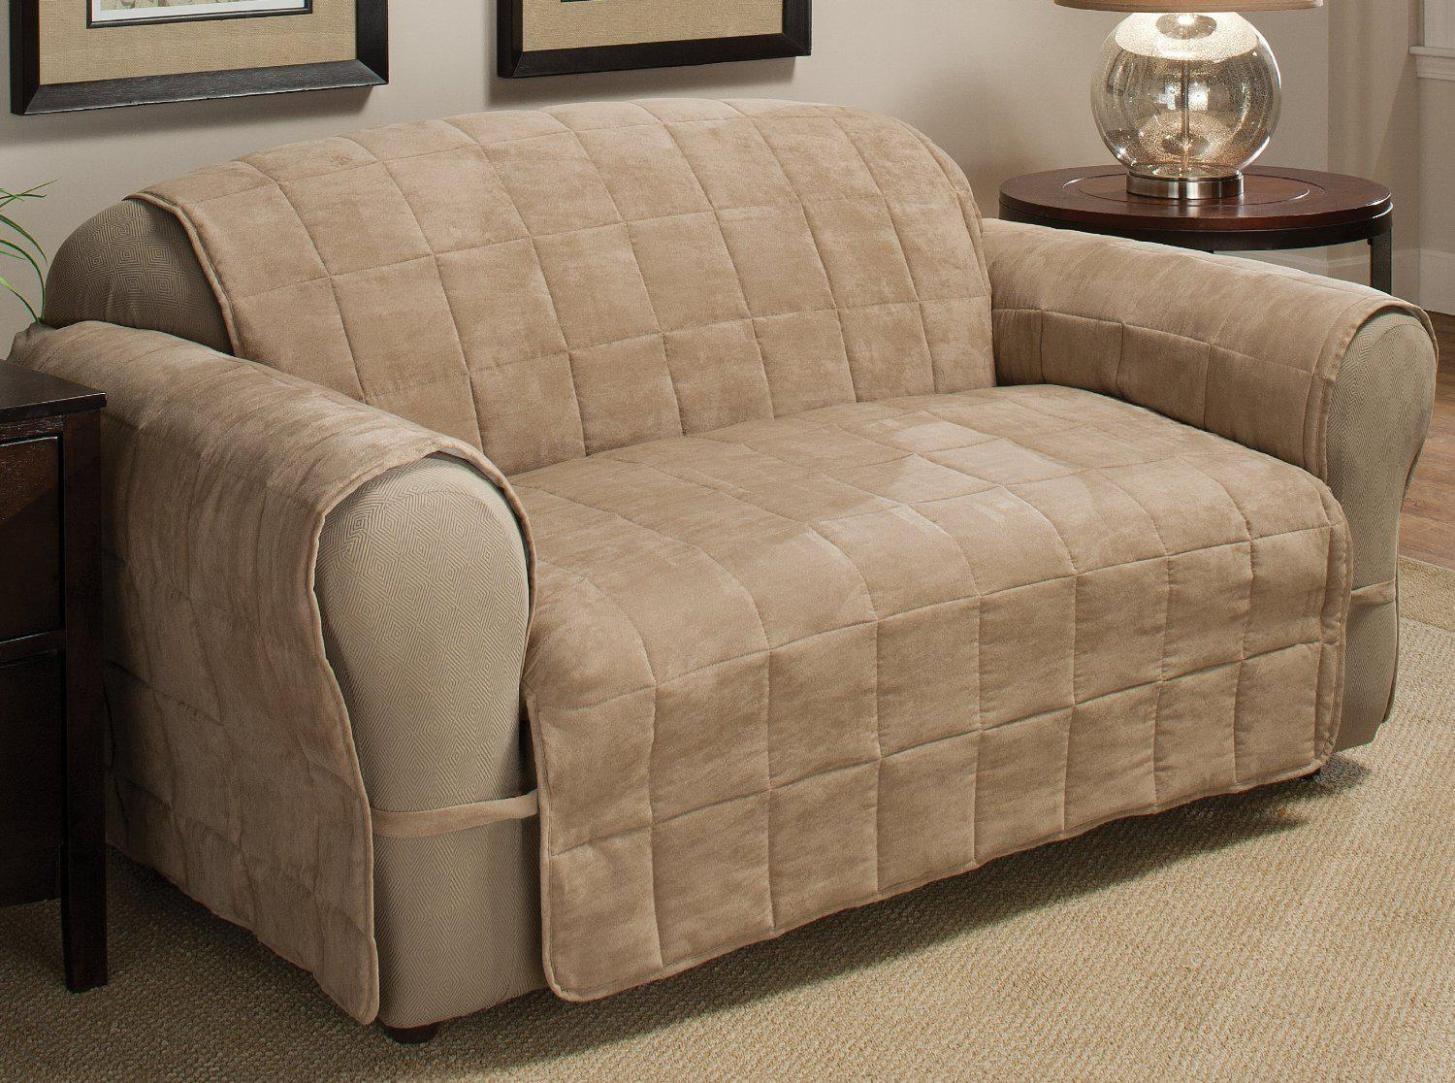 Sofas Center : Recliner Sofa Covers Couch Target Loveseat Awesome Intended For Recliner Sofa Slipcovers (Image 17 of 20)